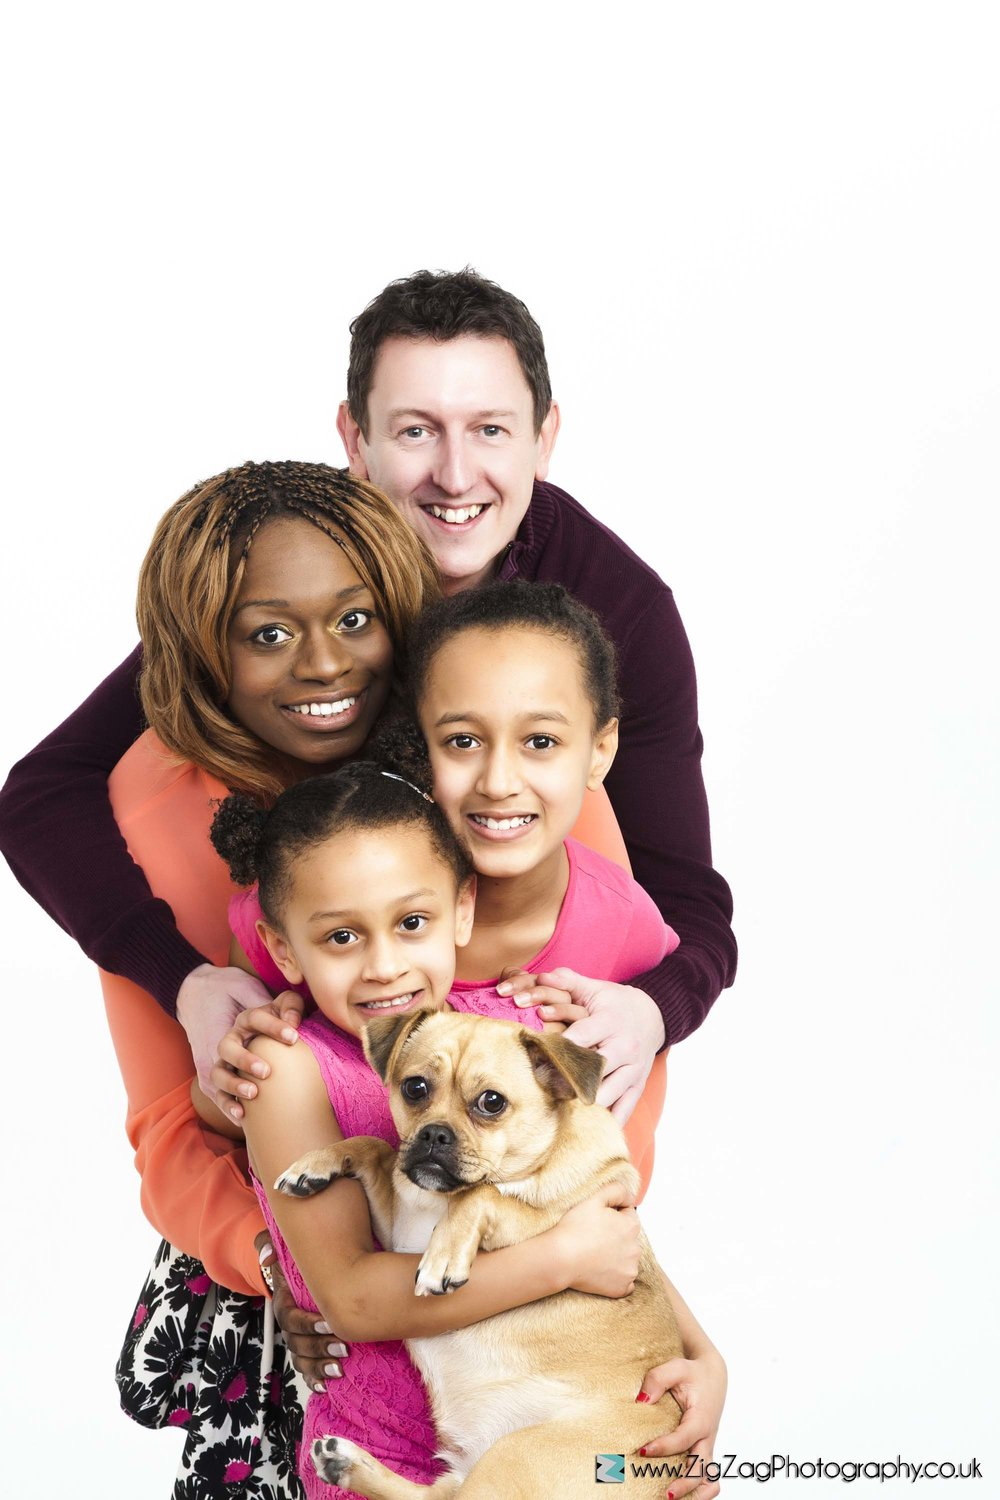 photography-session-leicester-photoshoot-zigzag-dog-pets-mum-dad-family-kids-girls-daughter-ideas.jpg